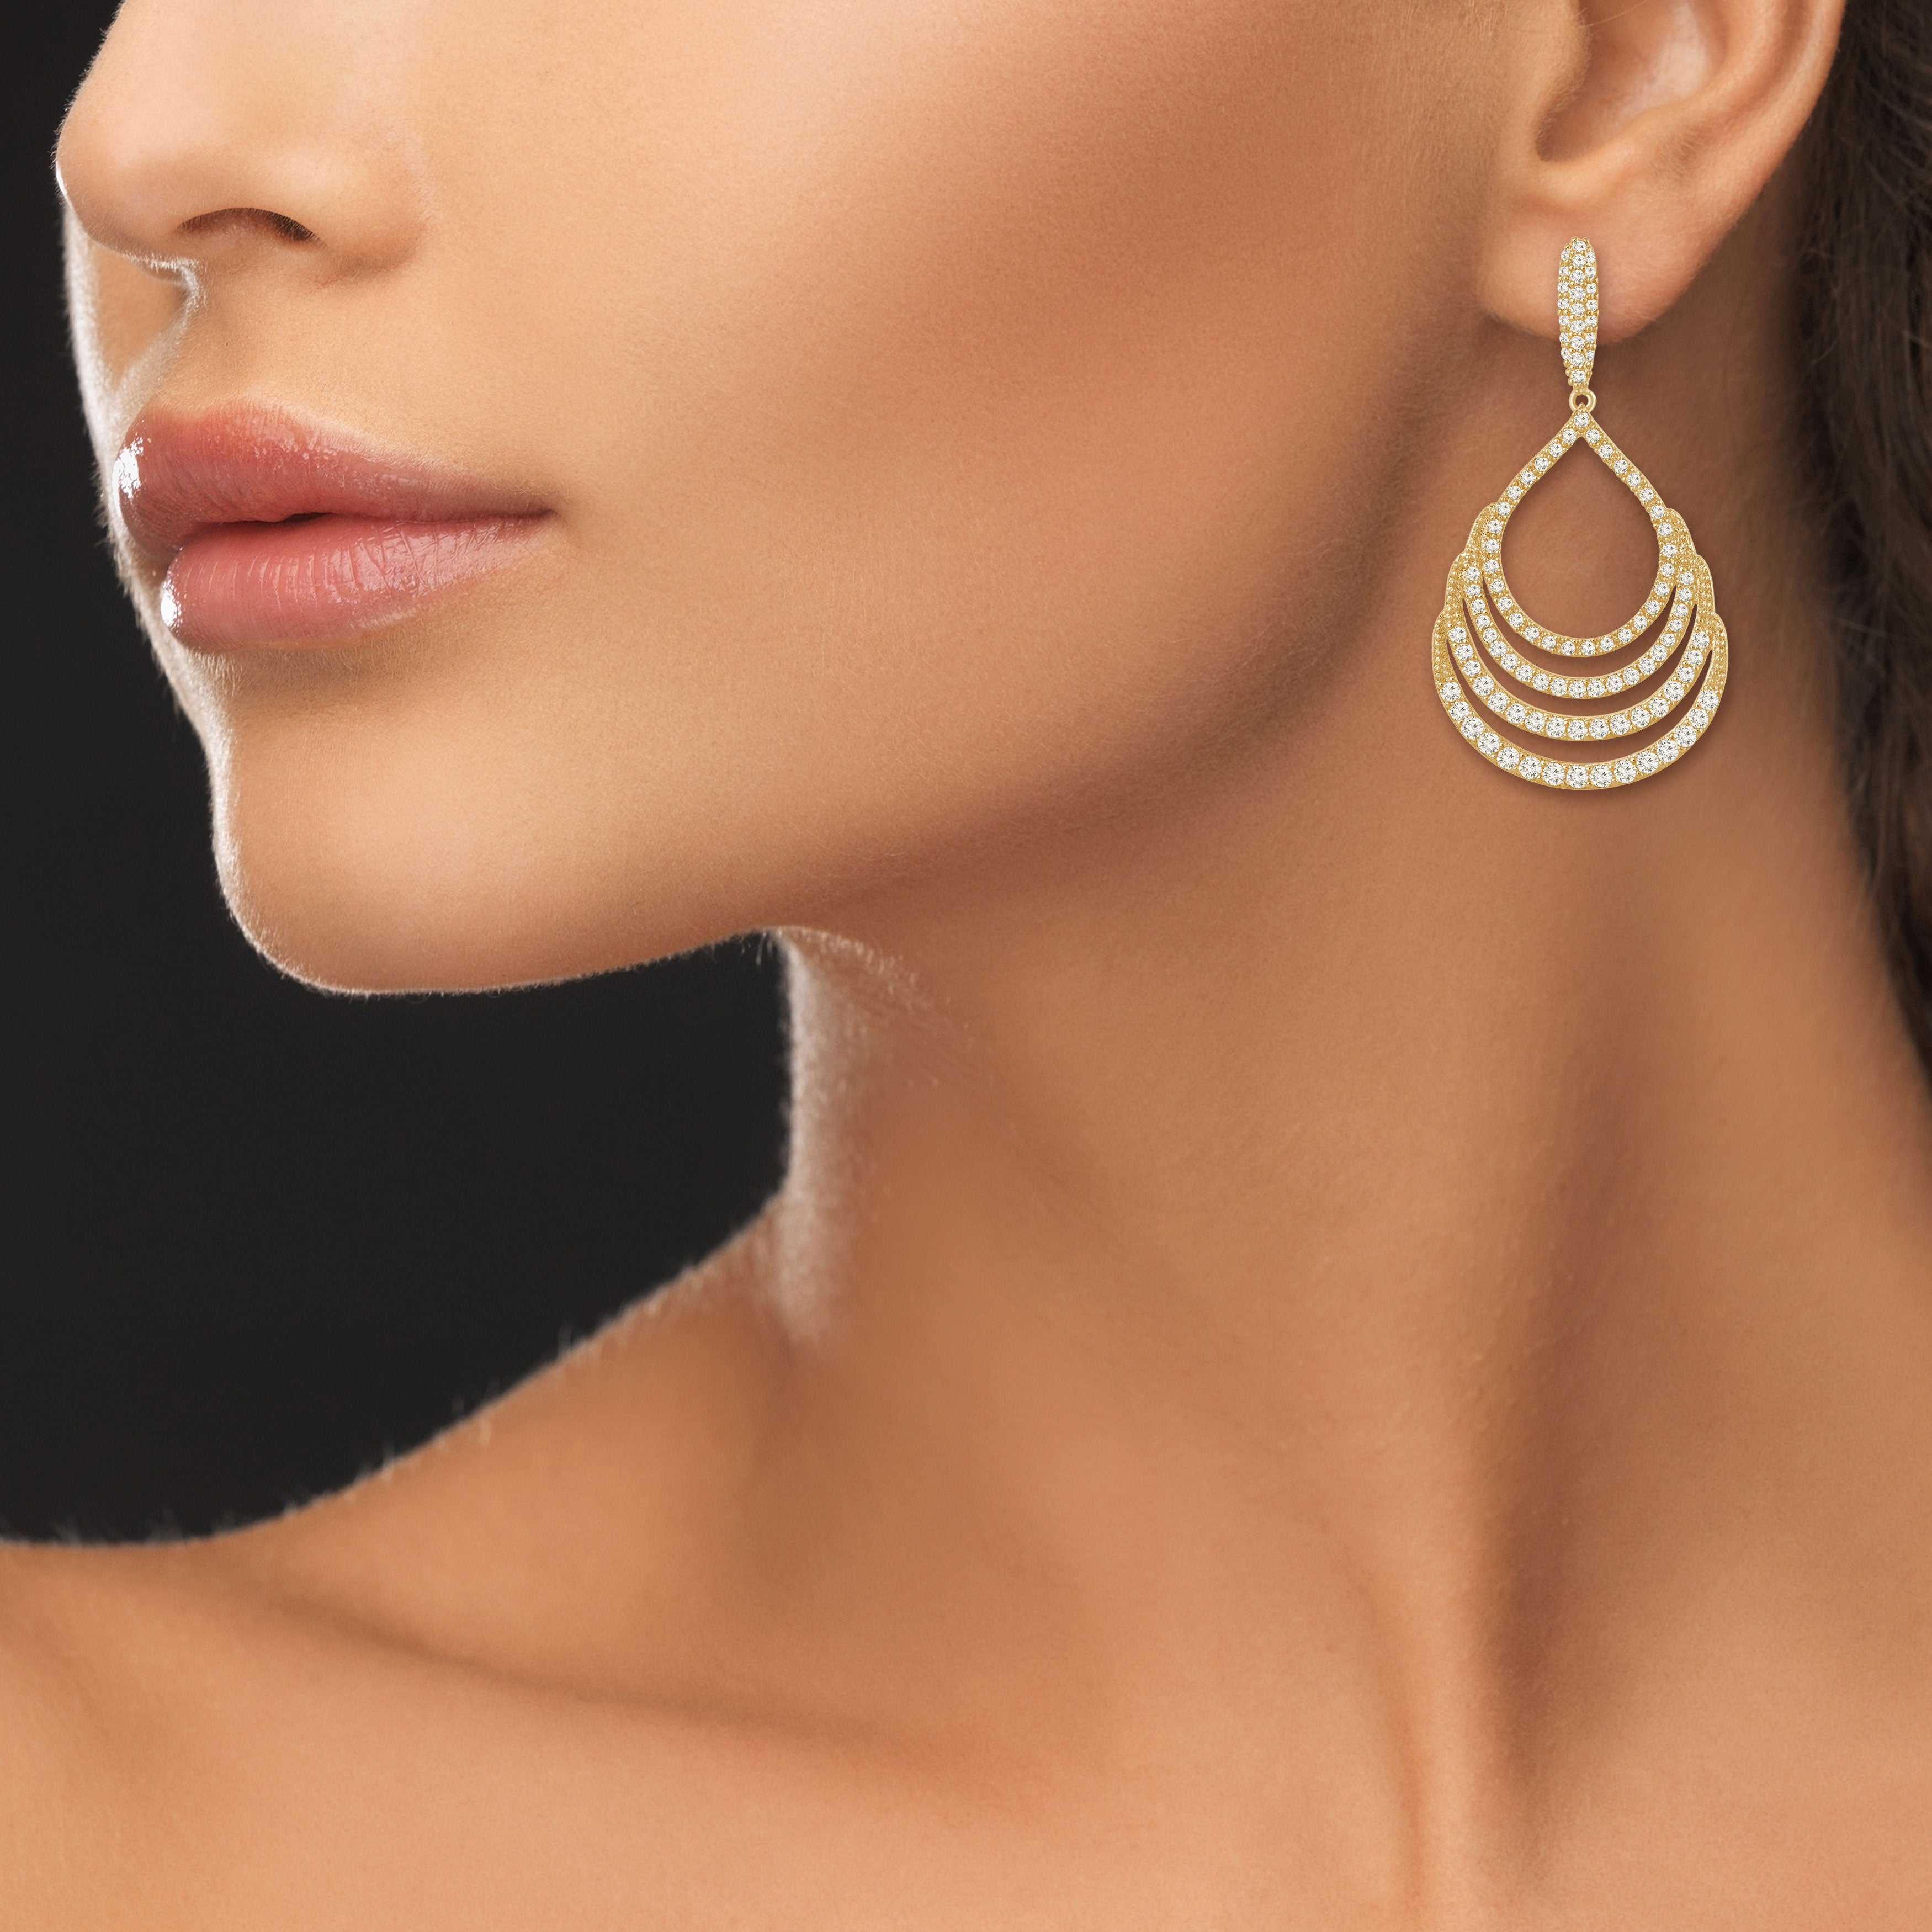 """Heartstrings"" 4.7ctw Pave Open Drop Dangling Earrings - Gold tone"